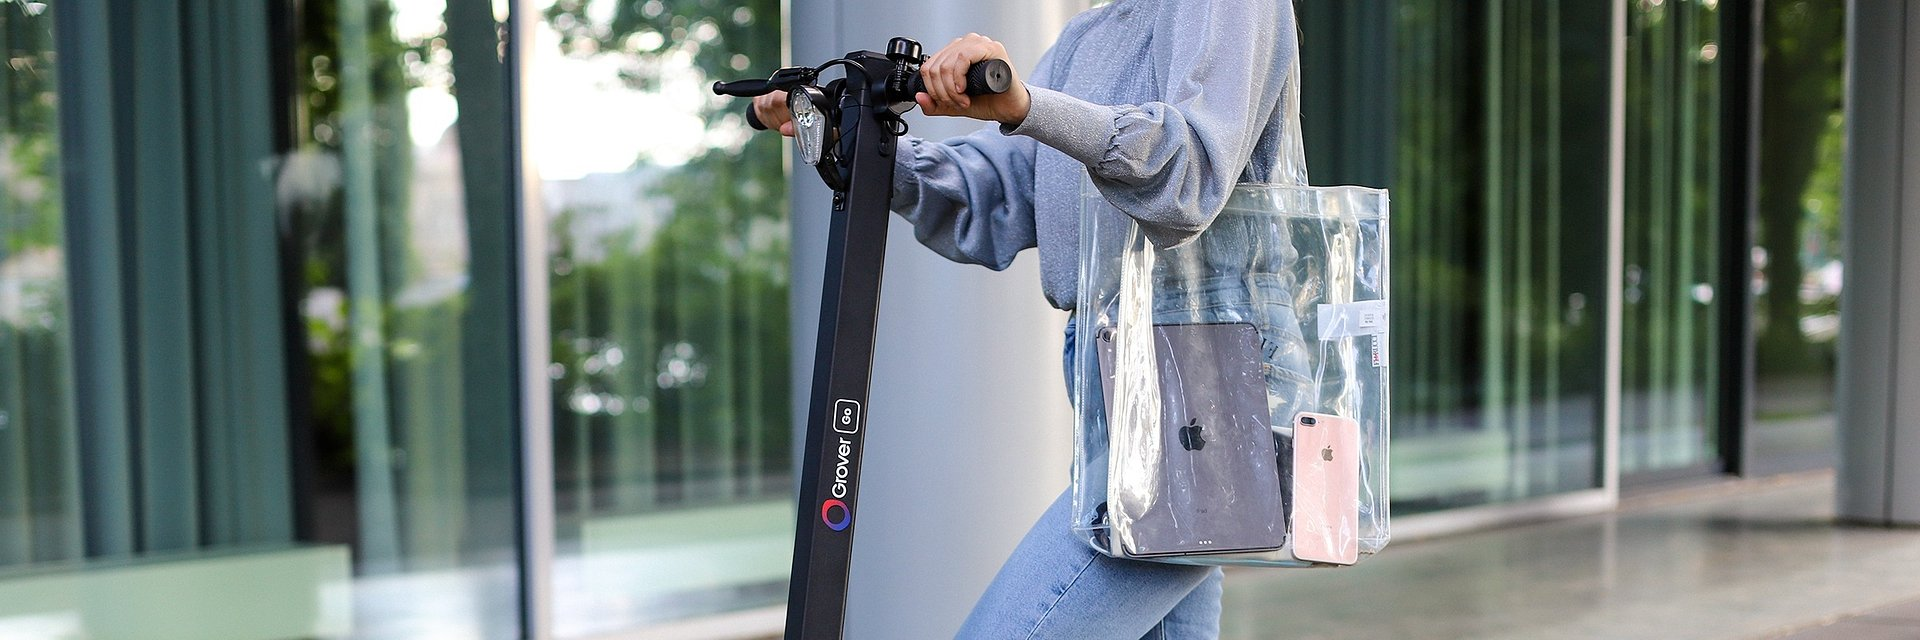 The ultimate e-scooter subscription: Grover launches its own scooter model